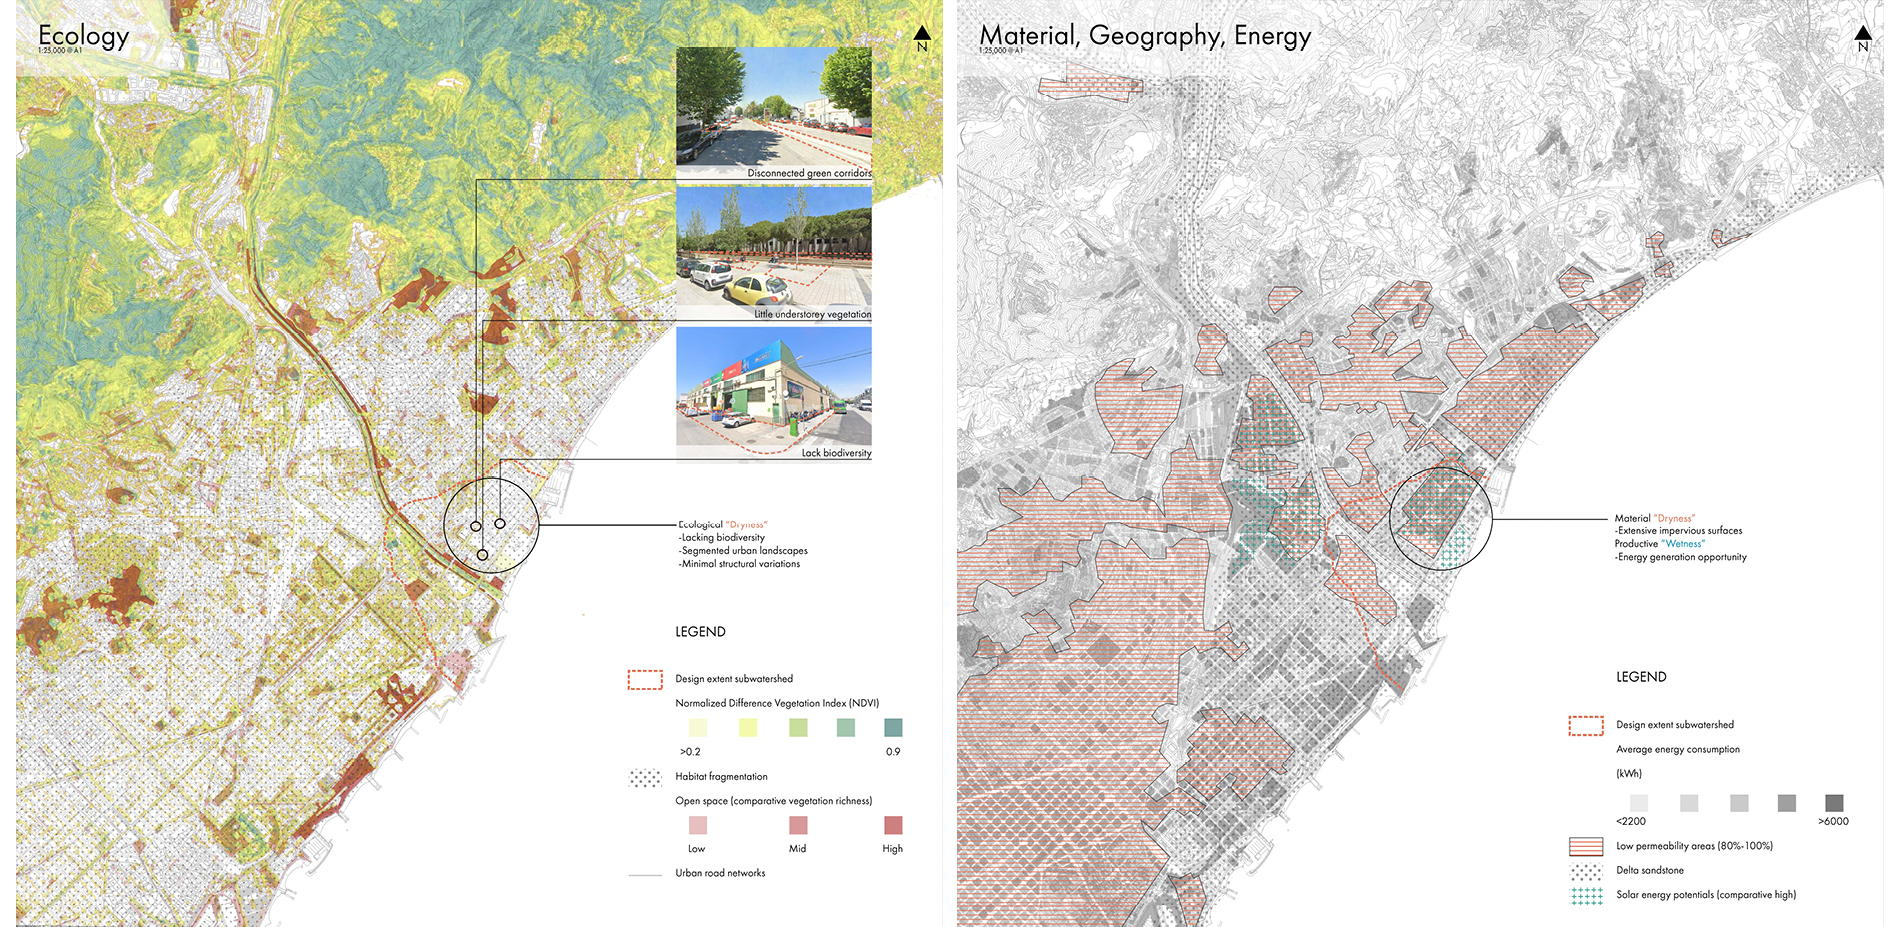 Mapping of Ecology and Material, Geography, Energy